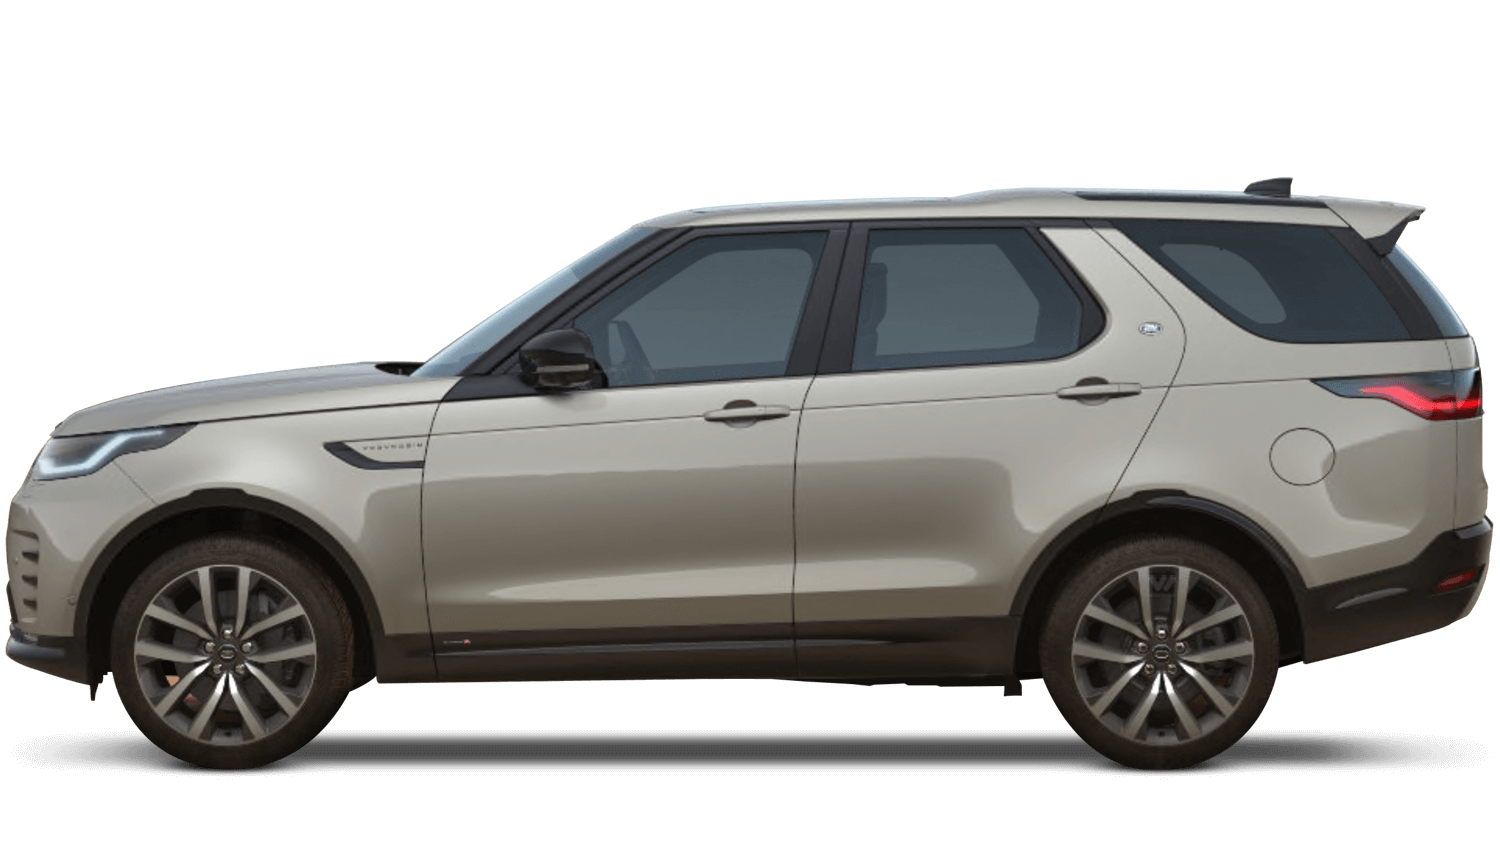 Land Rover New Discovery Business Offers